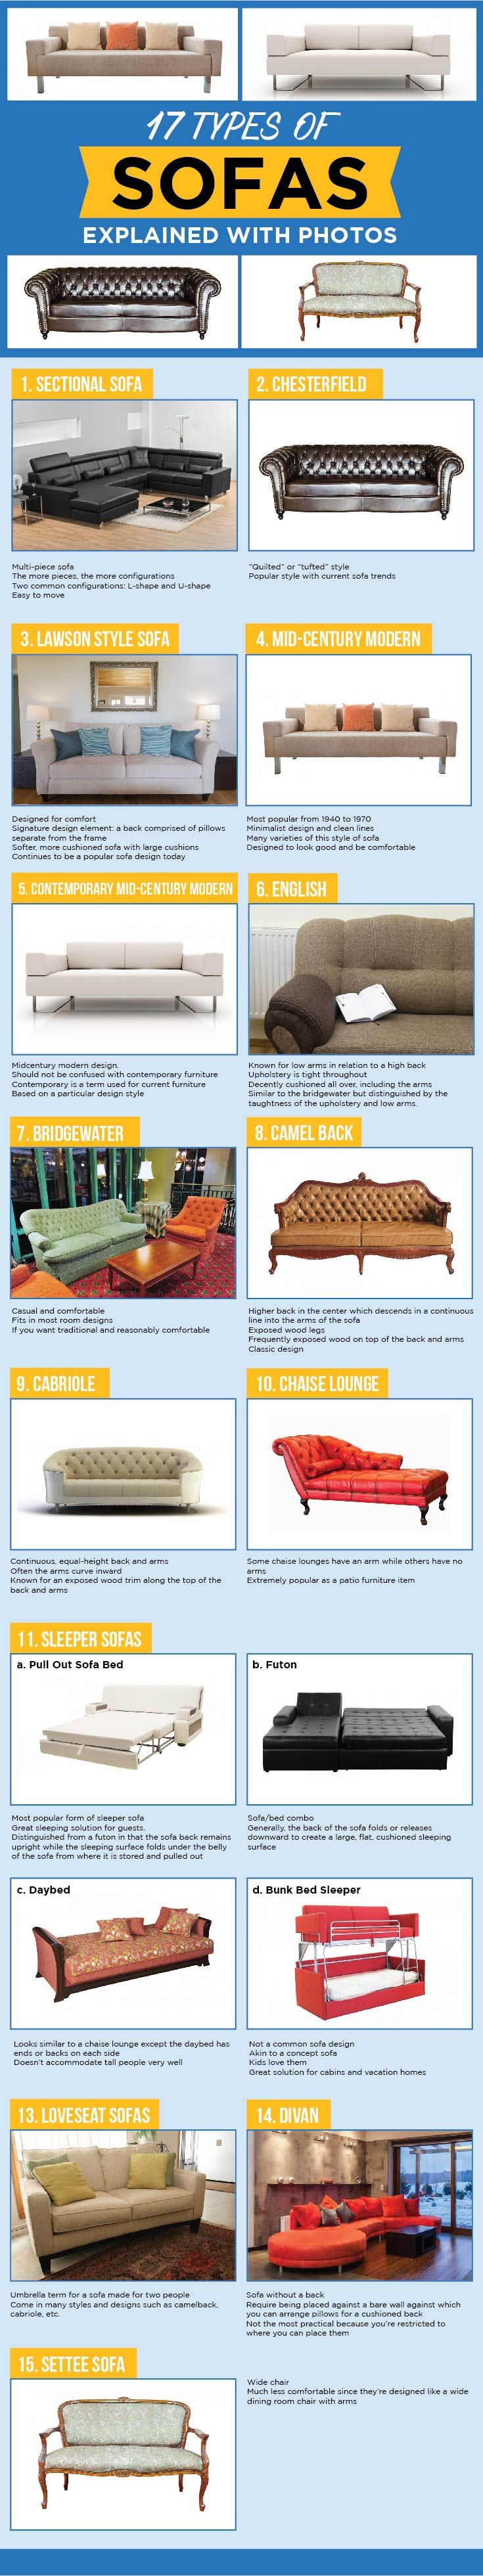 25 Styles Of Sofas Couches Explained With Photos Types Of Sofas Types Of Couches Lounge Chair Outdoor